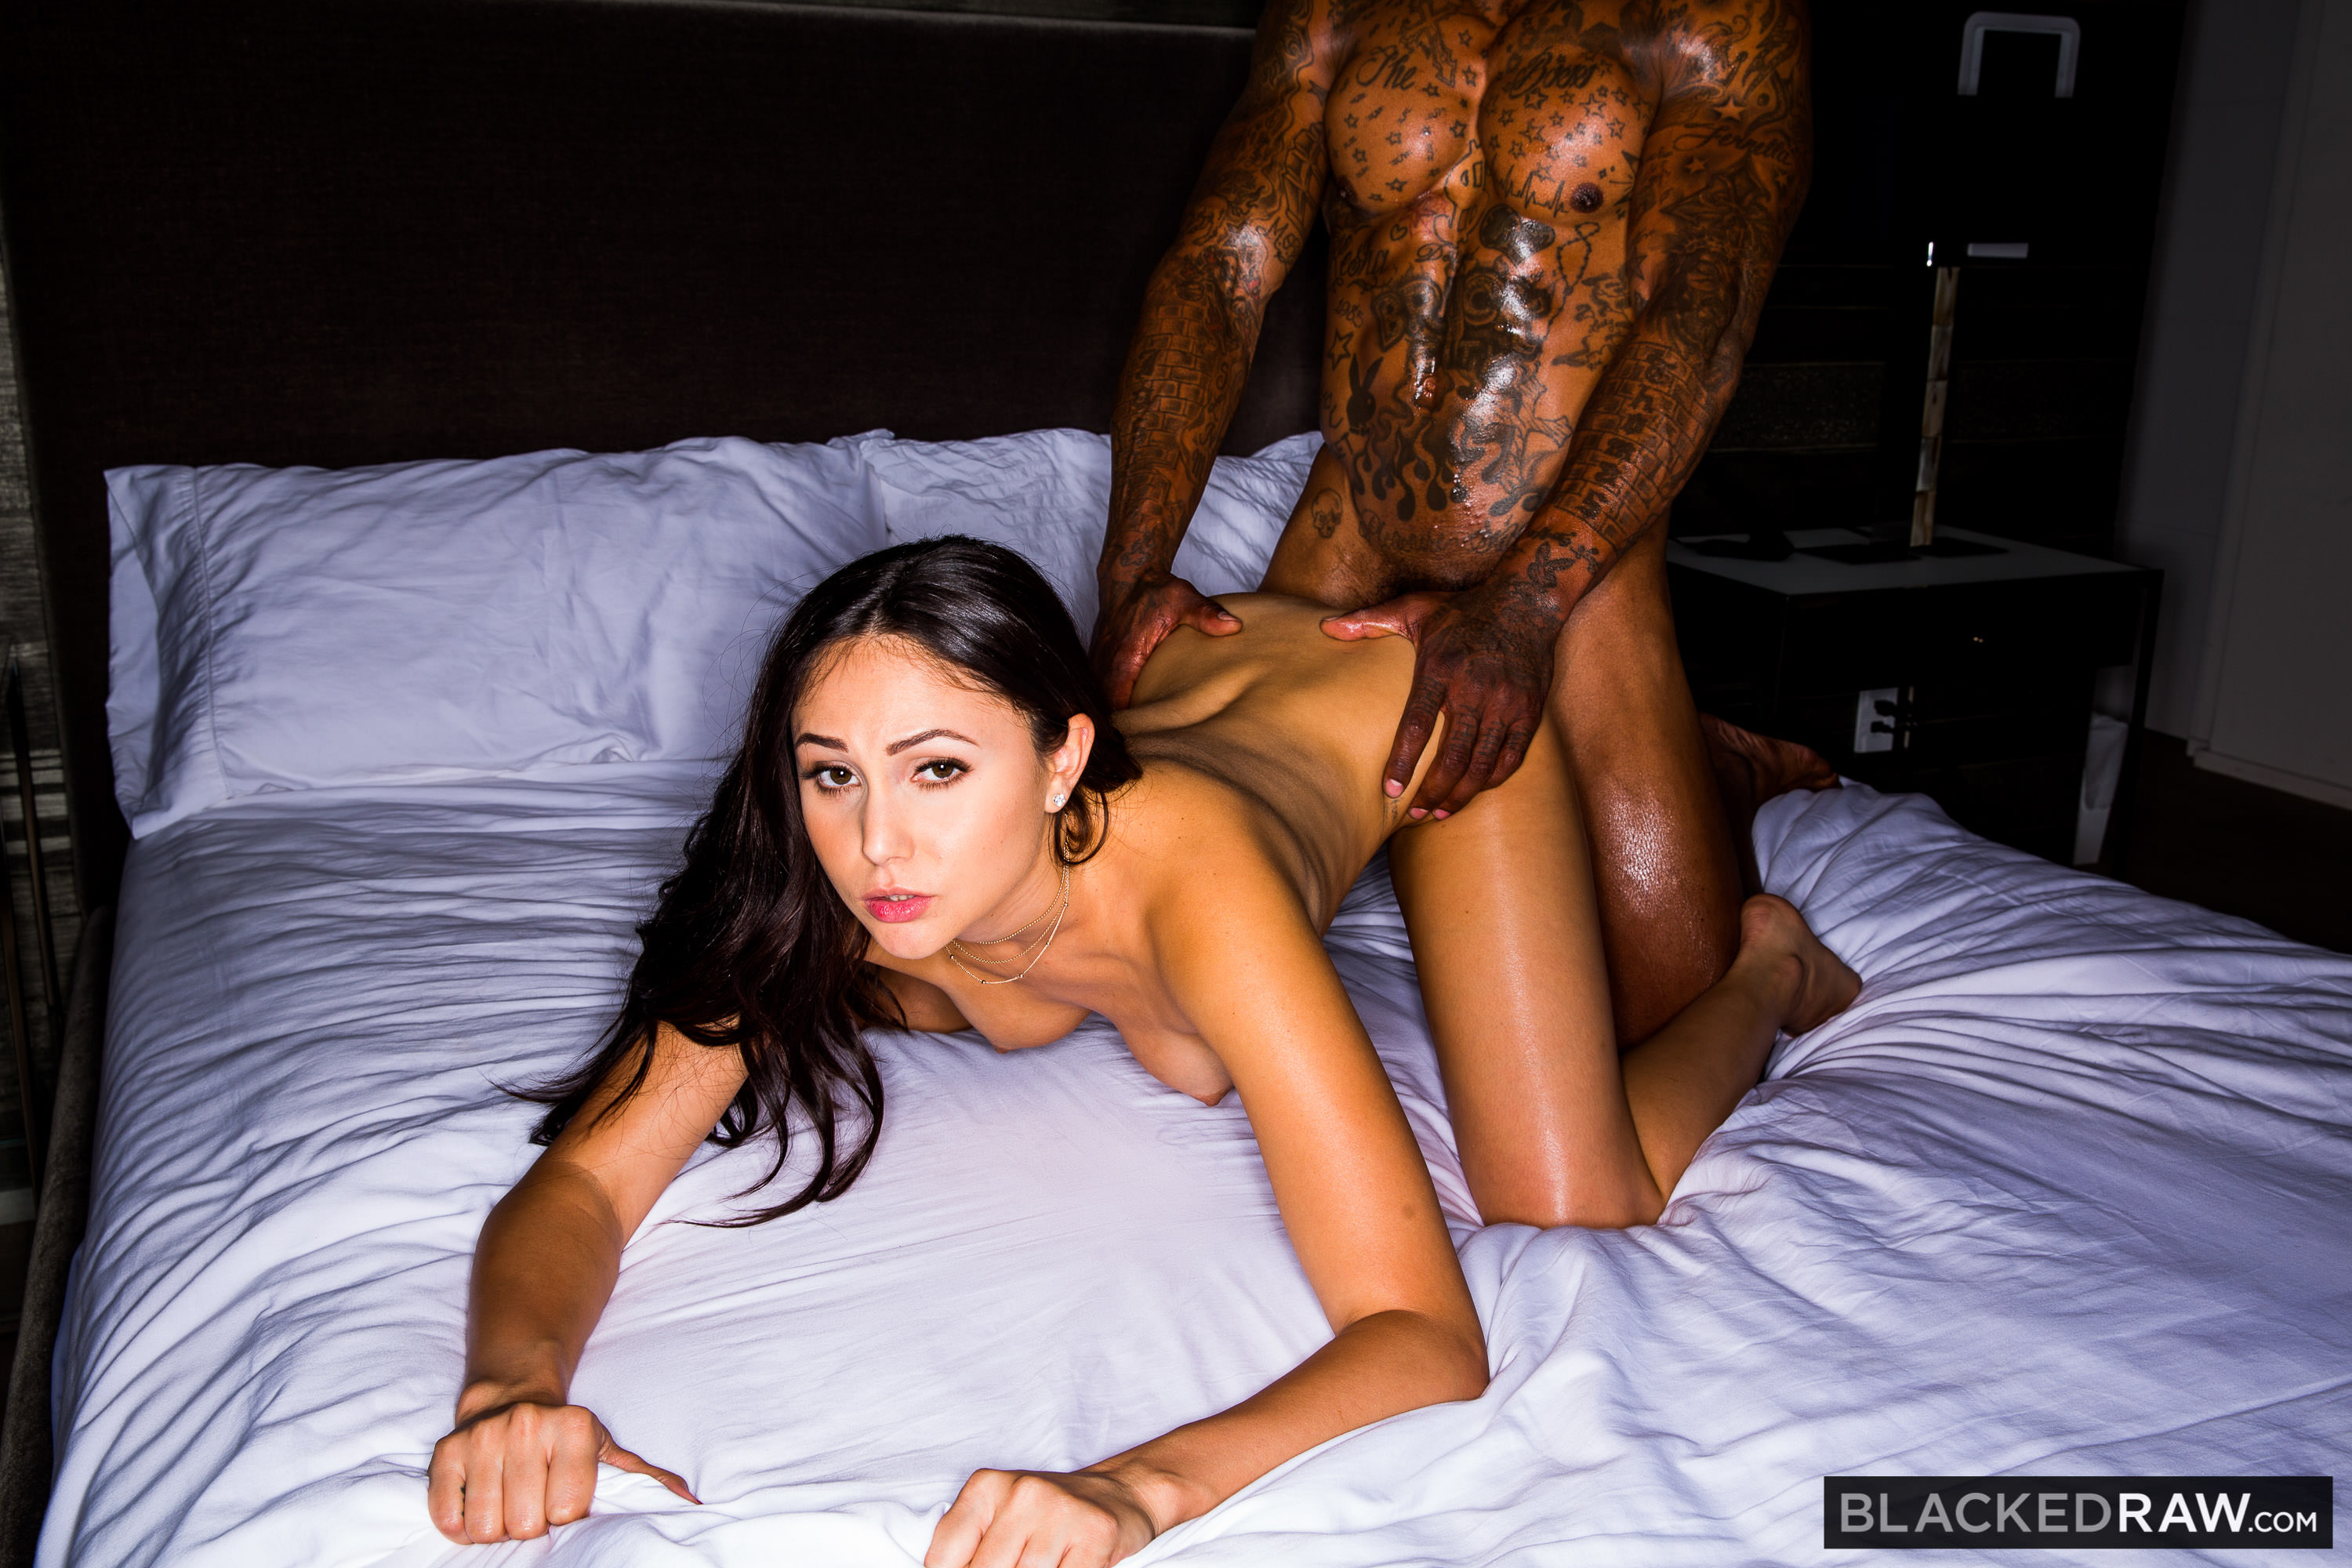 Wife sharing 2 cocks 3some 5